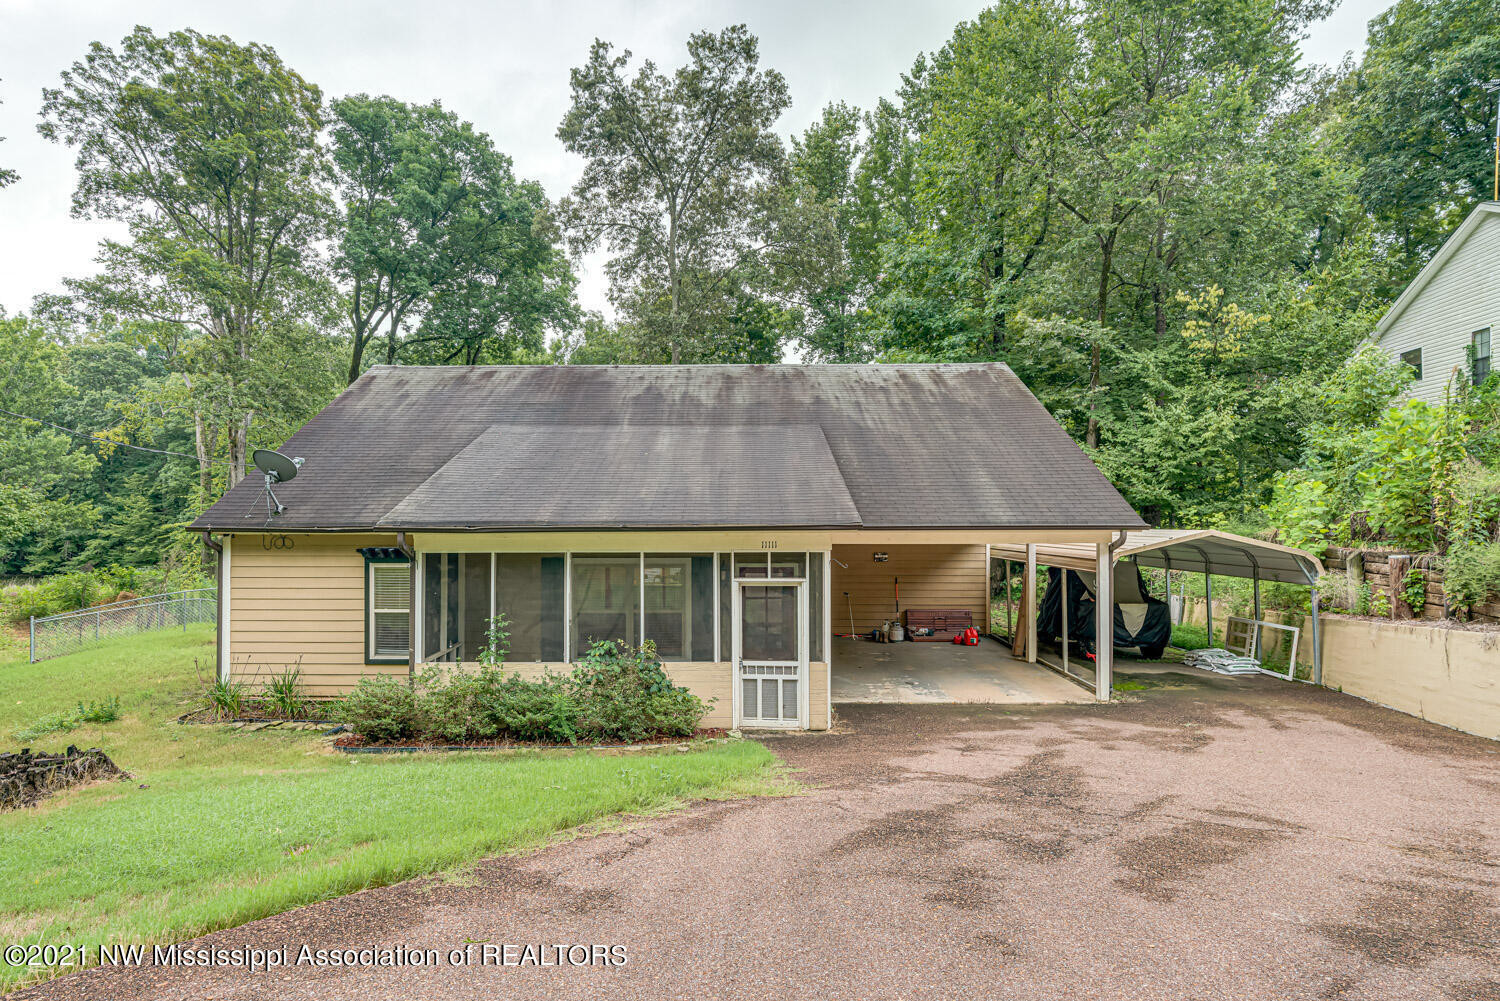 3-Bedroom House In Chickasaw Bluff